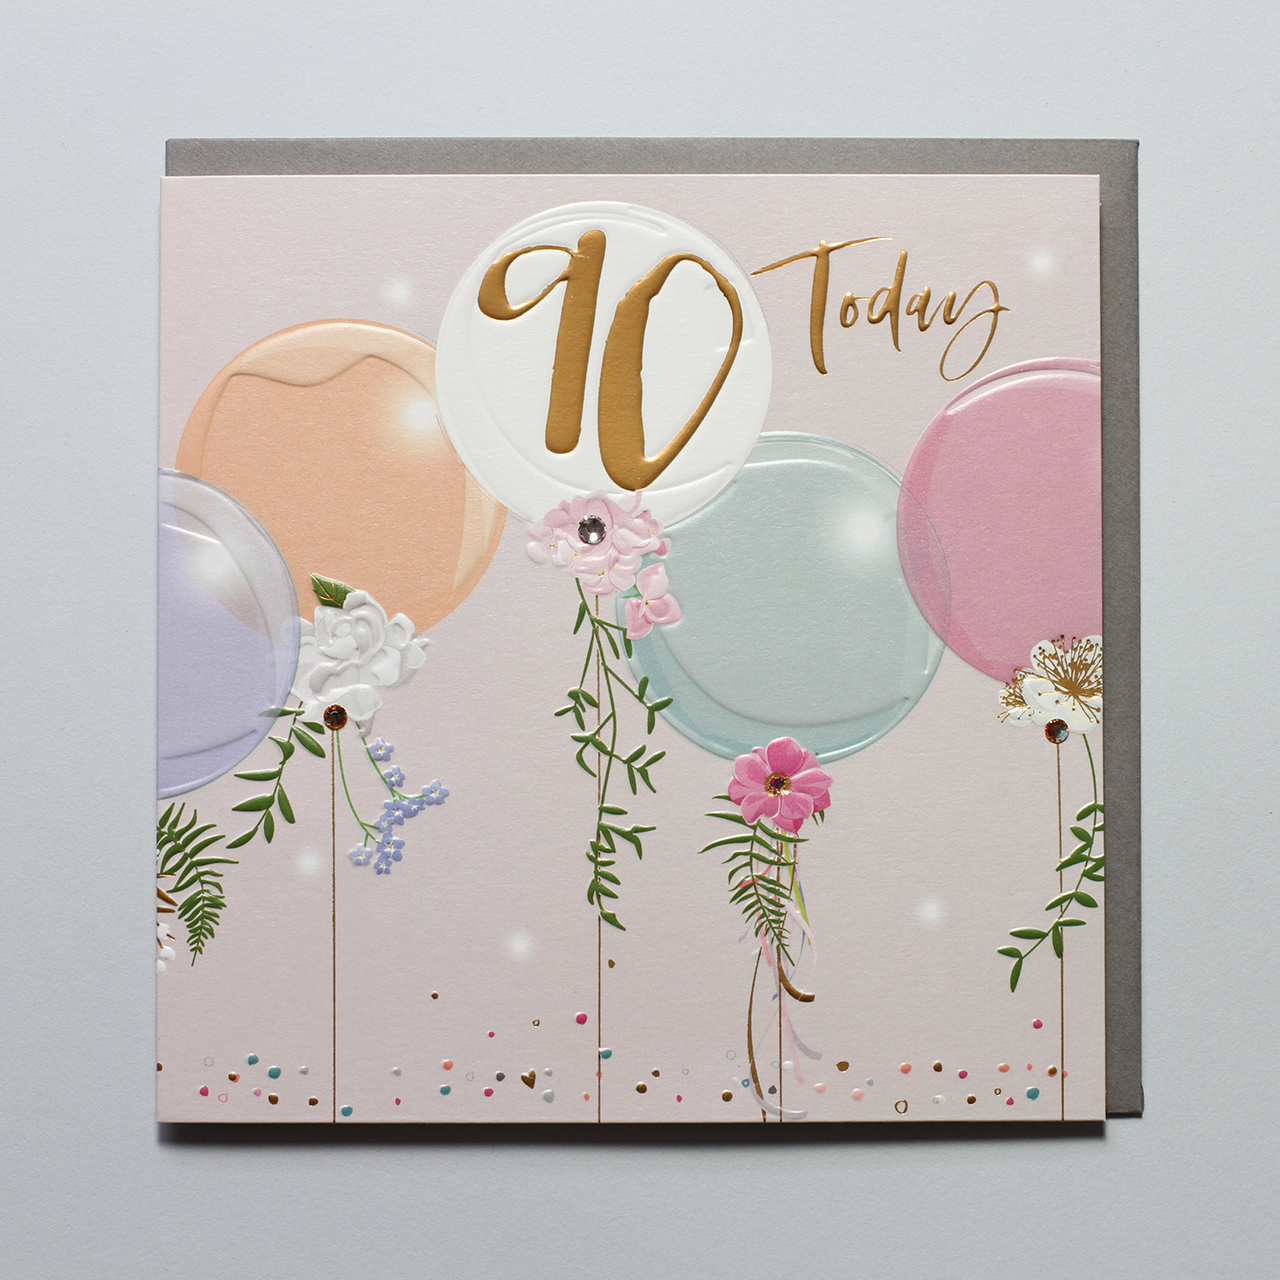 Belly Button Designs, 90th Birthday Balloons